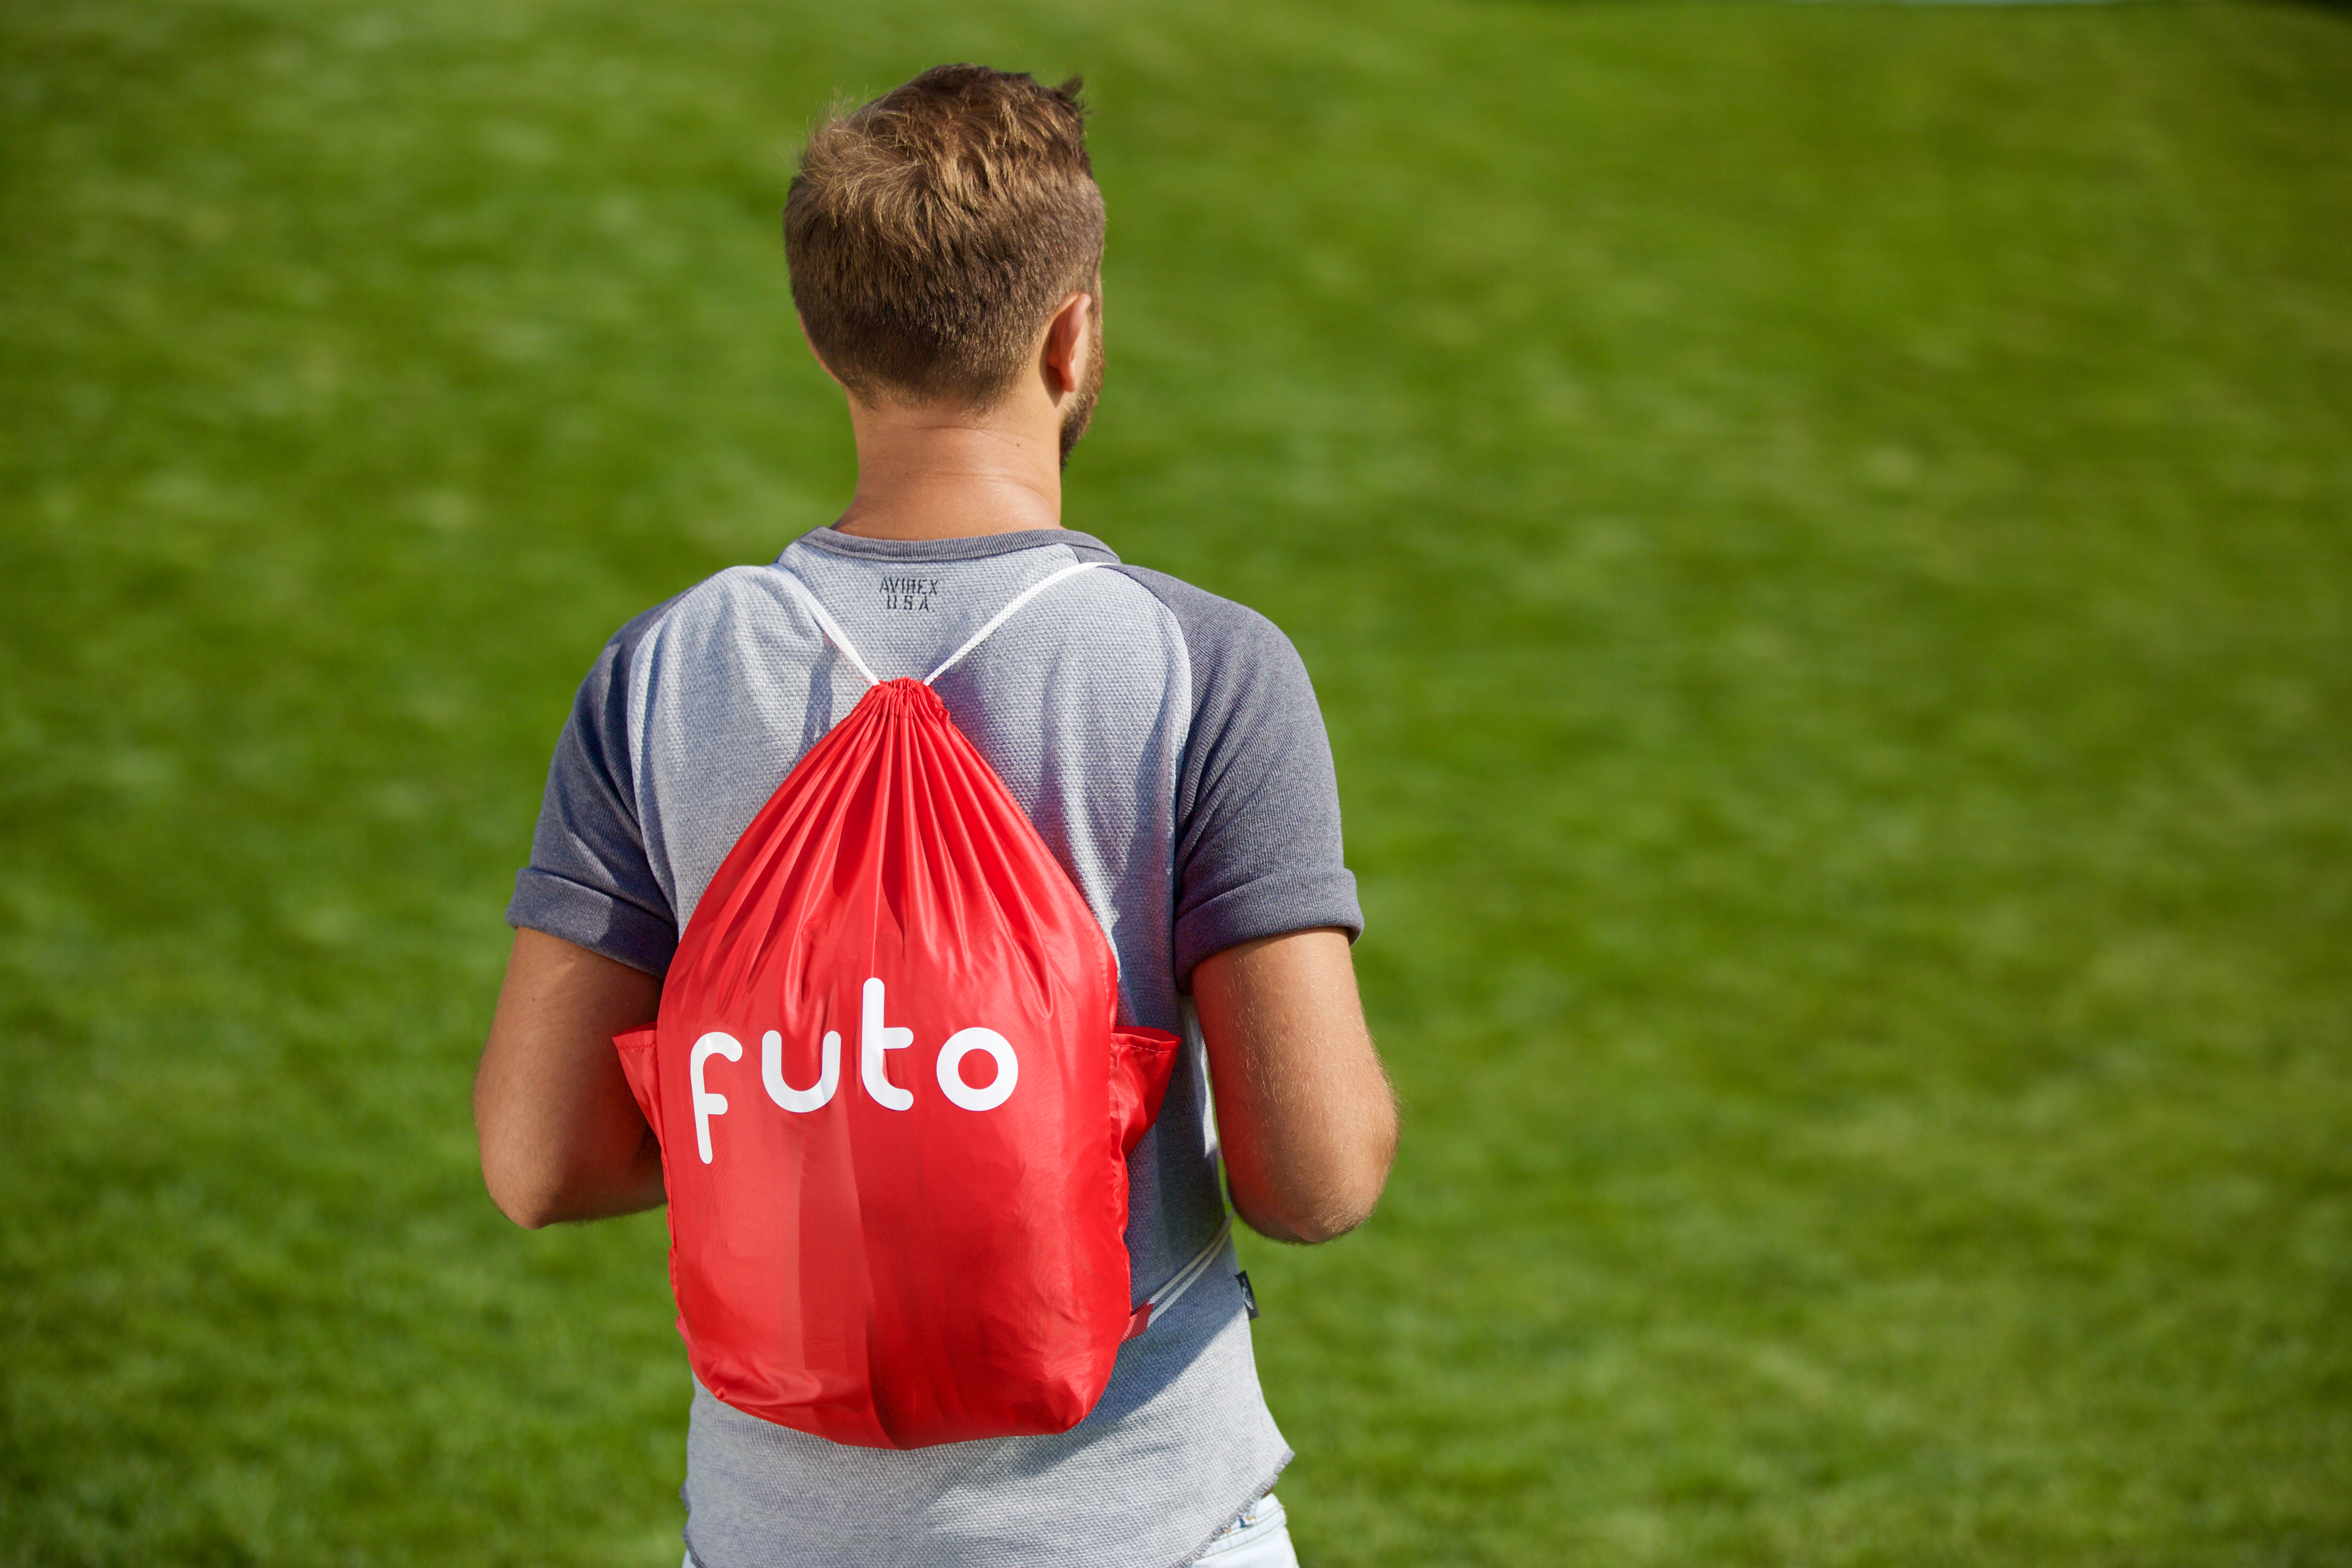 Futo mattress fits in a backpack and inflates in 20 seconds